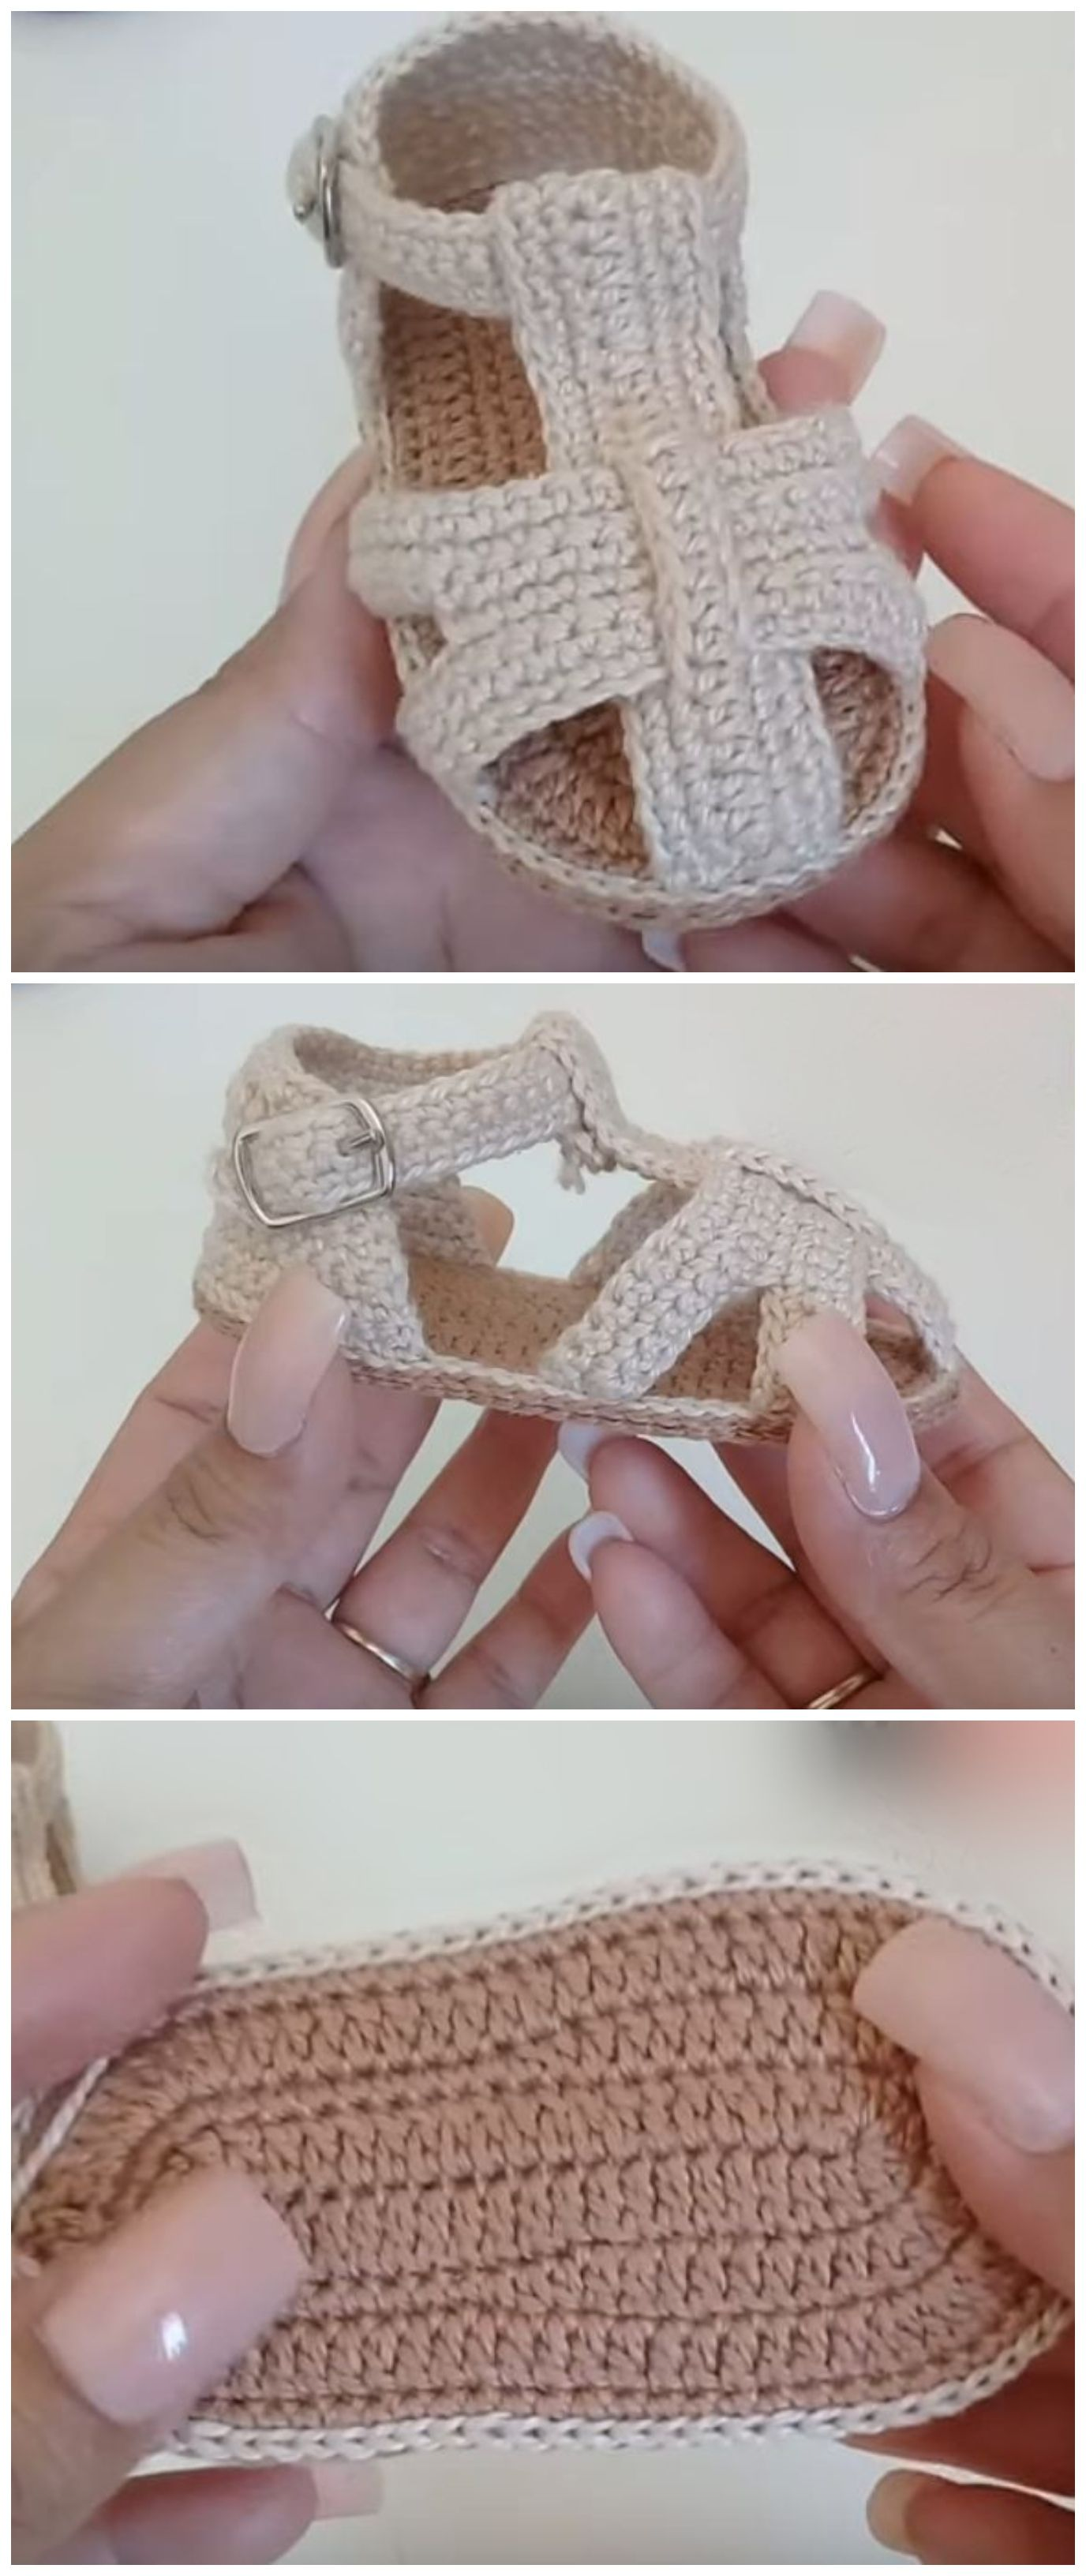 Crochet Baby Sandals From 3 To 6 Months